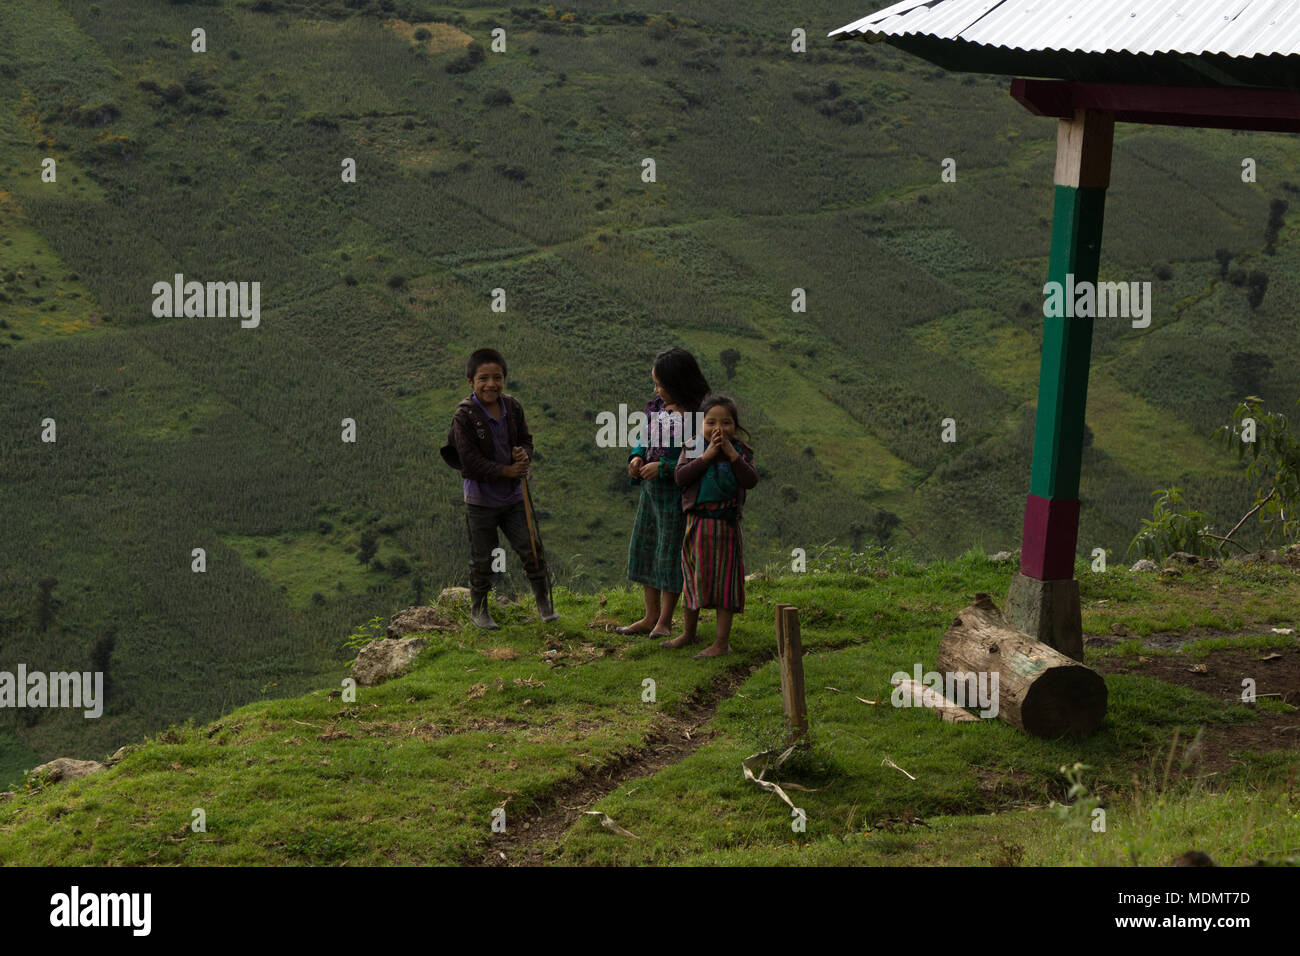 Some kids amused by strangers in a remote town in the mountains of Huehuetenango, Guatemala. Stock Photo